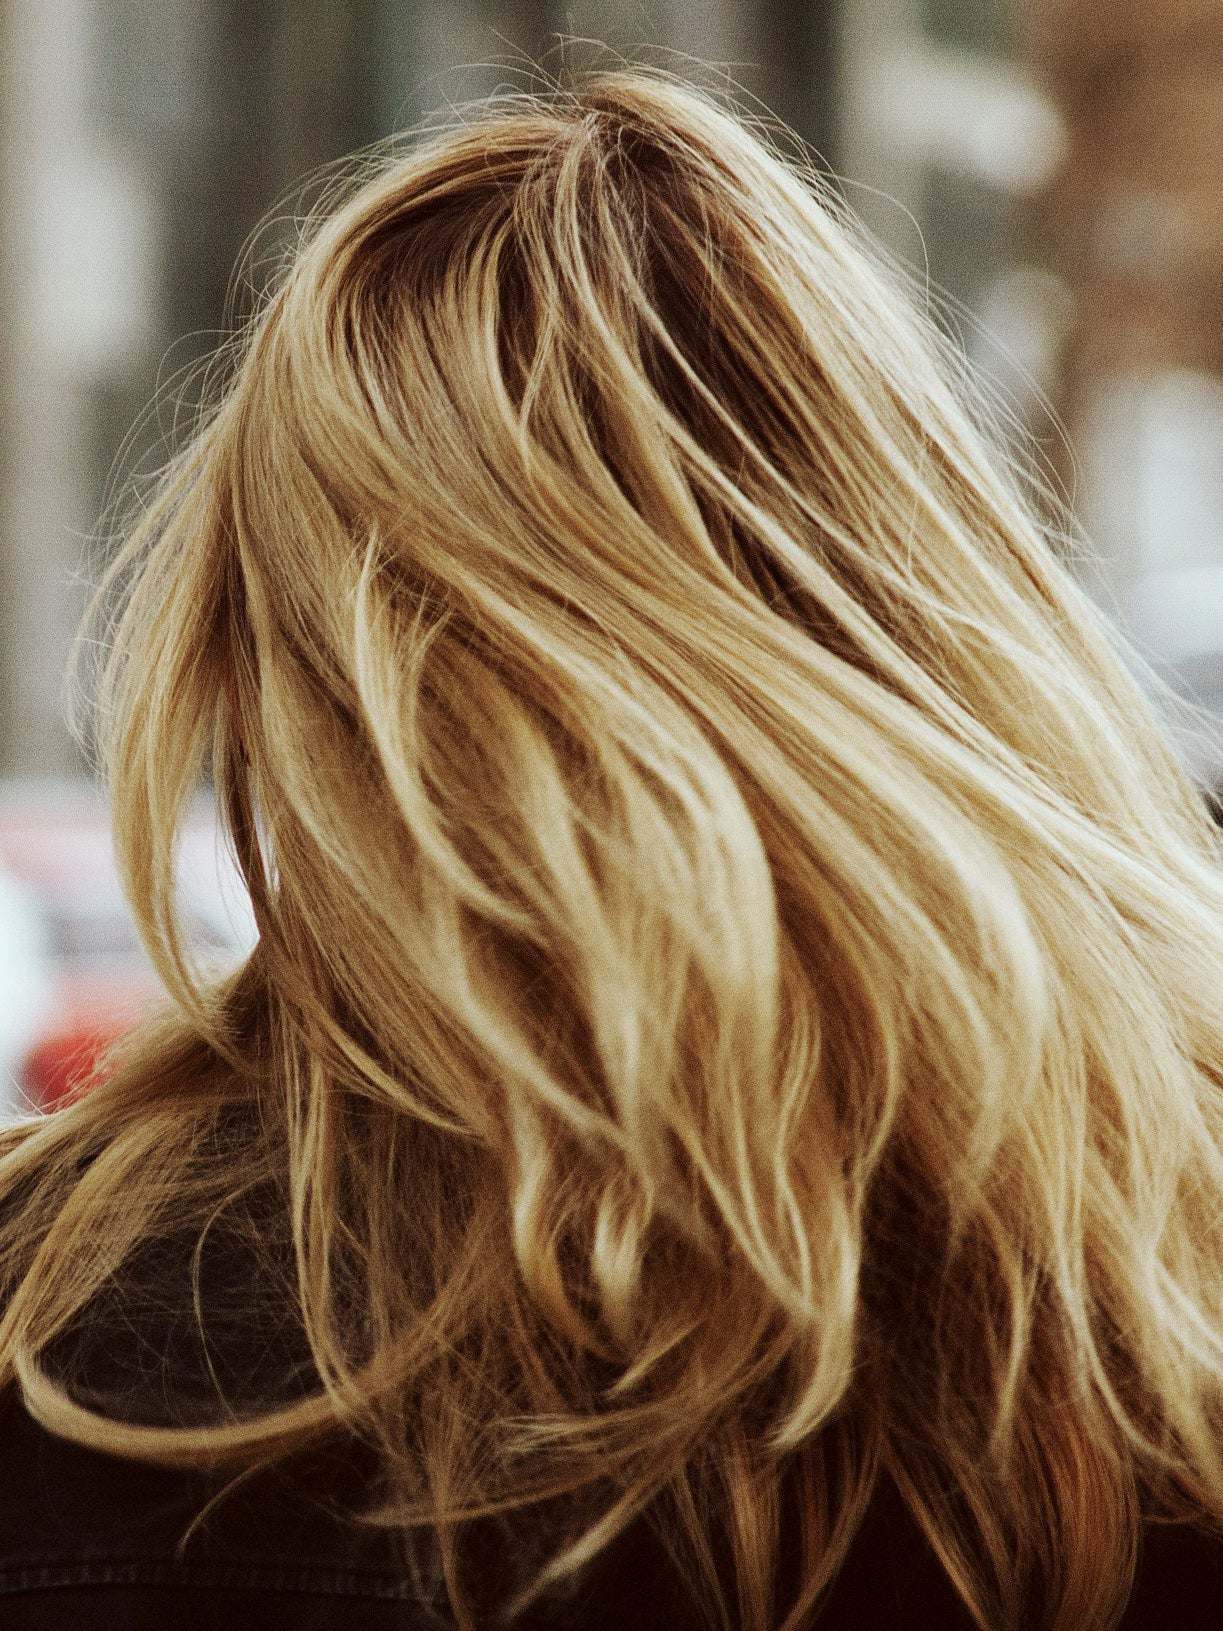 How to Lighten Your Hair Naturally (Even If You're Not Blonde)